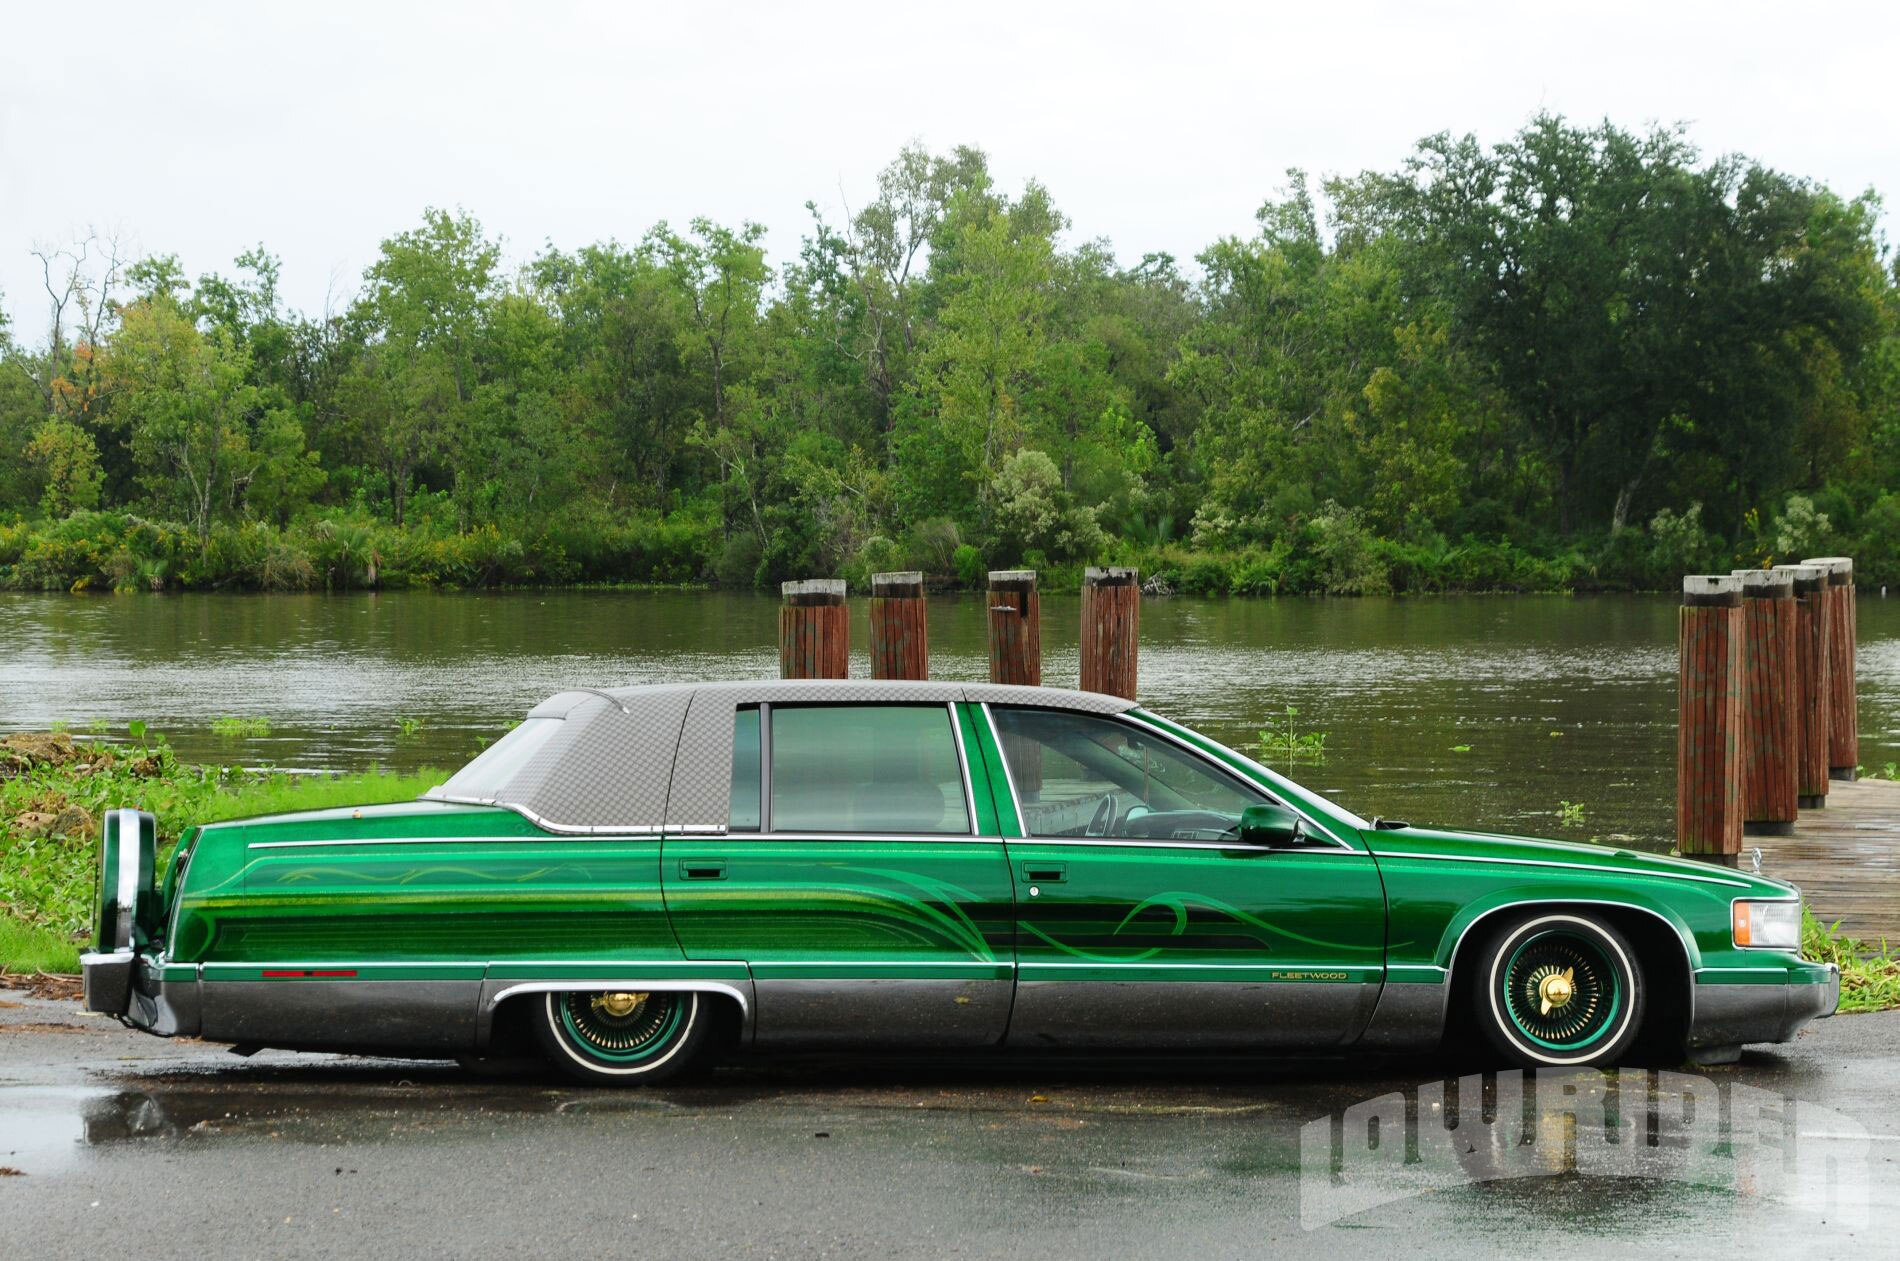 lrmp-1111-03-o-1995-cadillac-fleetwood-side2